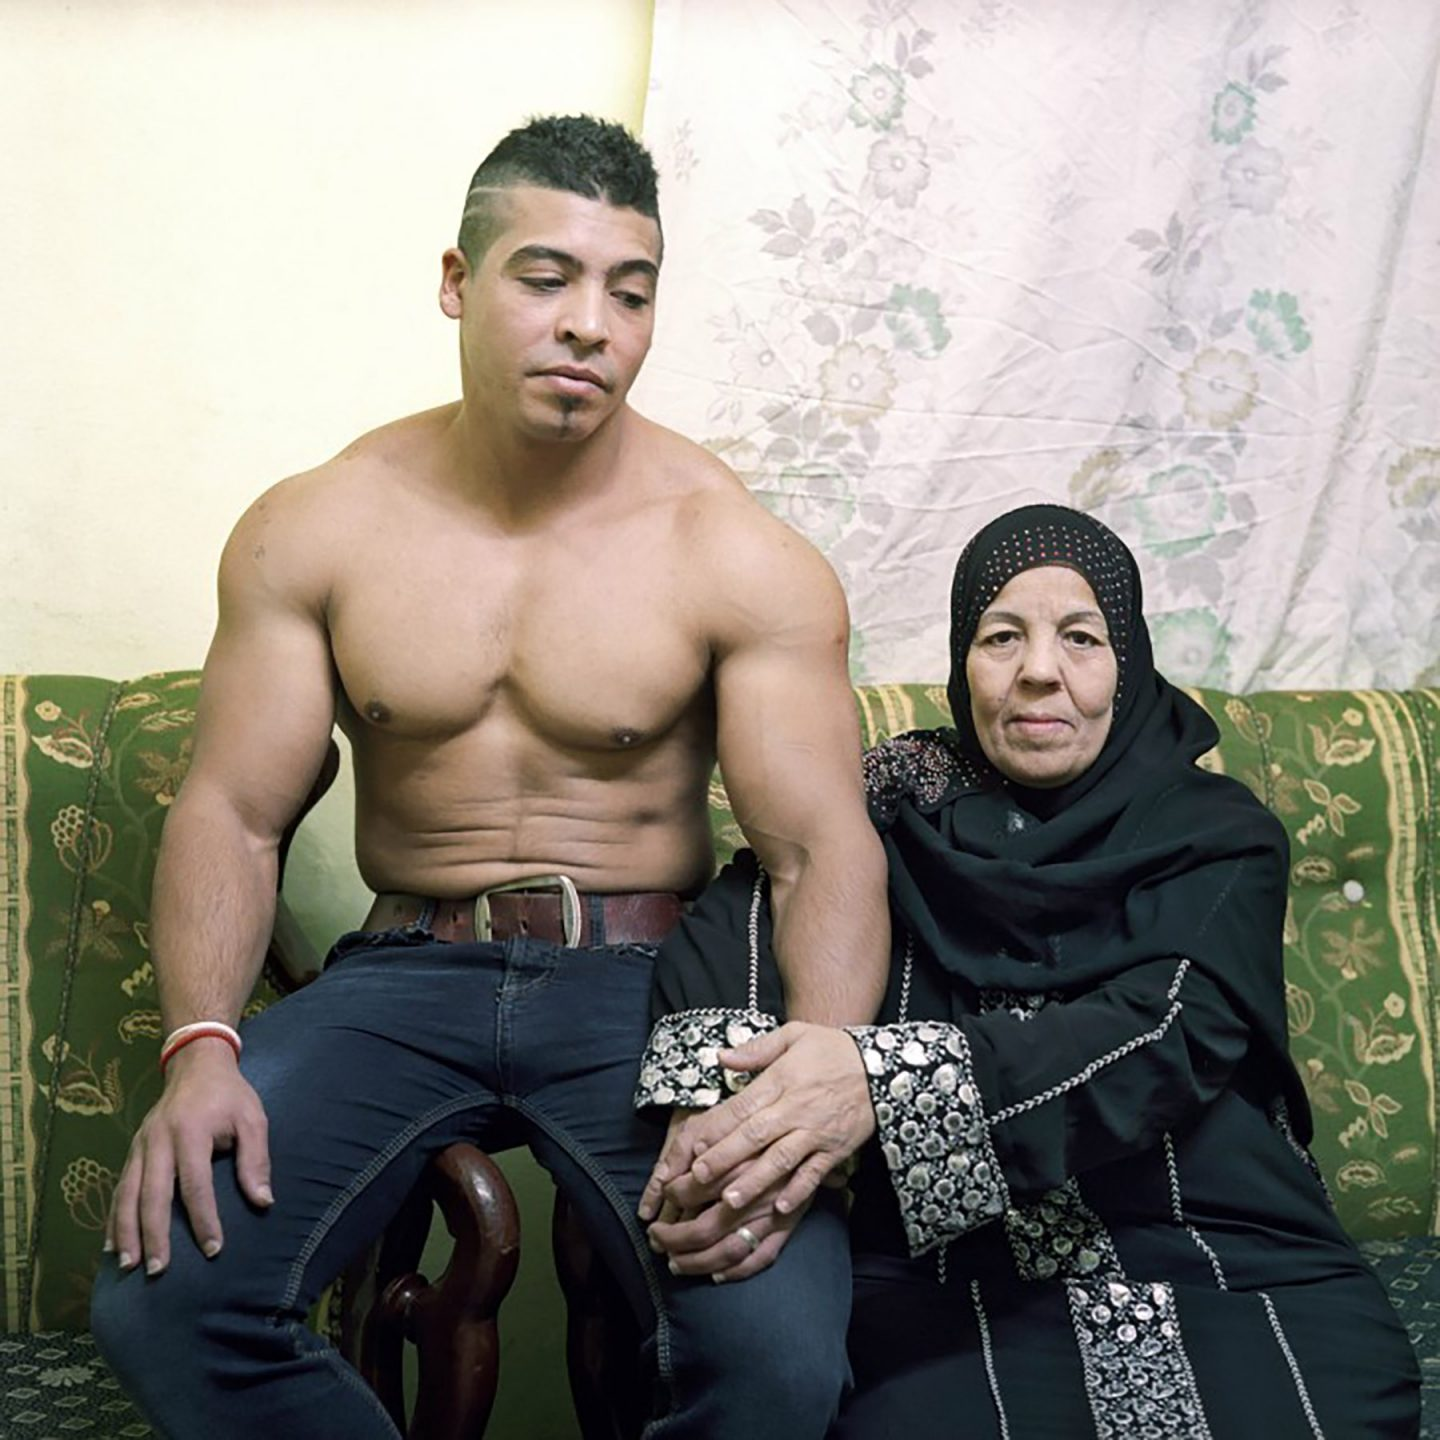 iGNANT-Photography-Denis-Dailleux-Egypt-Mother-And-Son-04